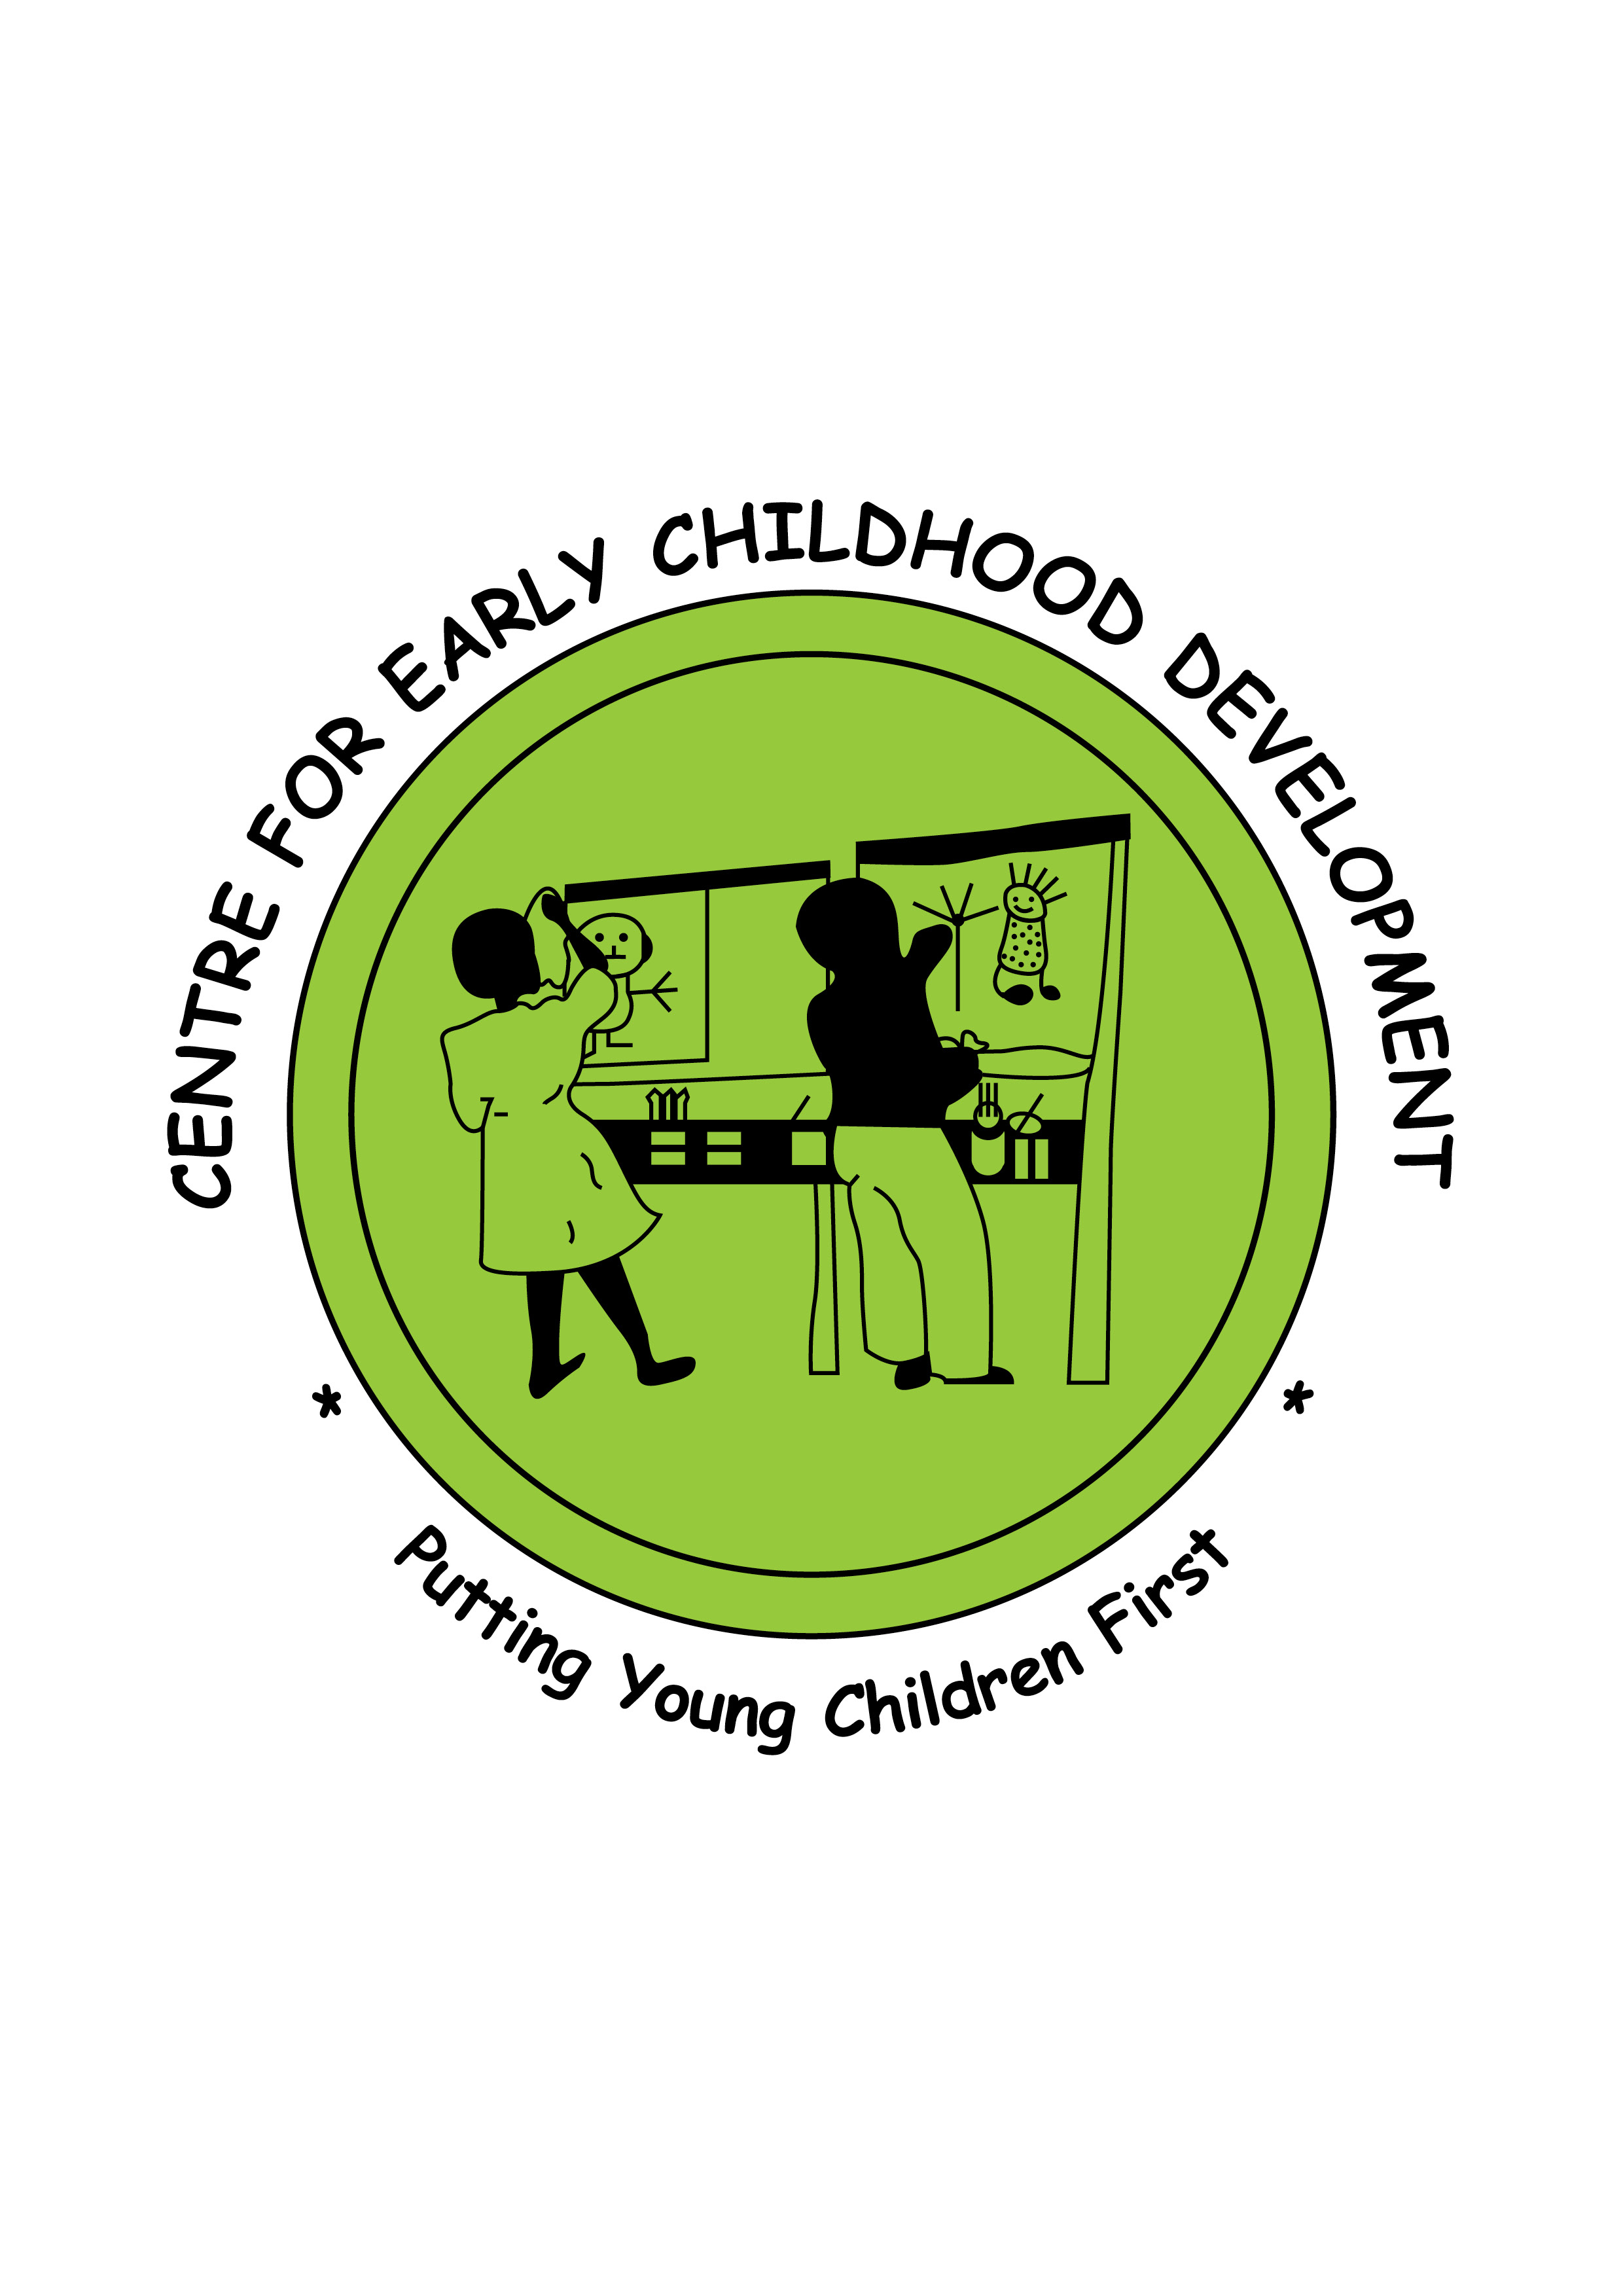 Centre for Early Childhood Development